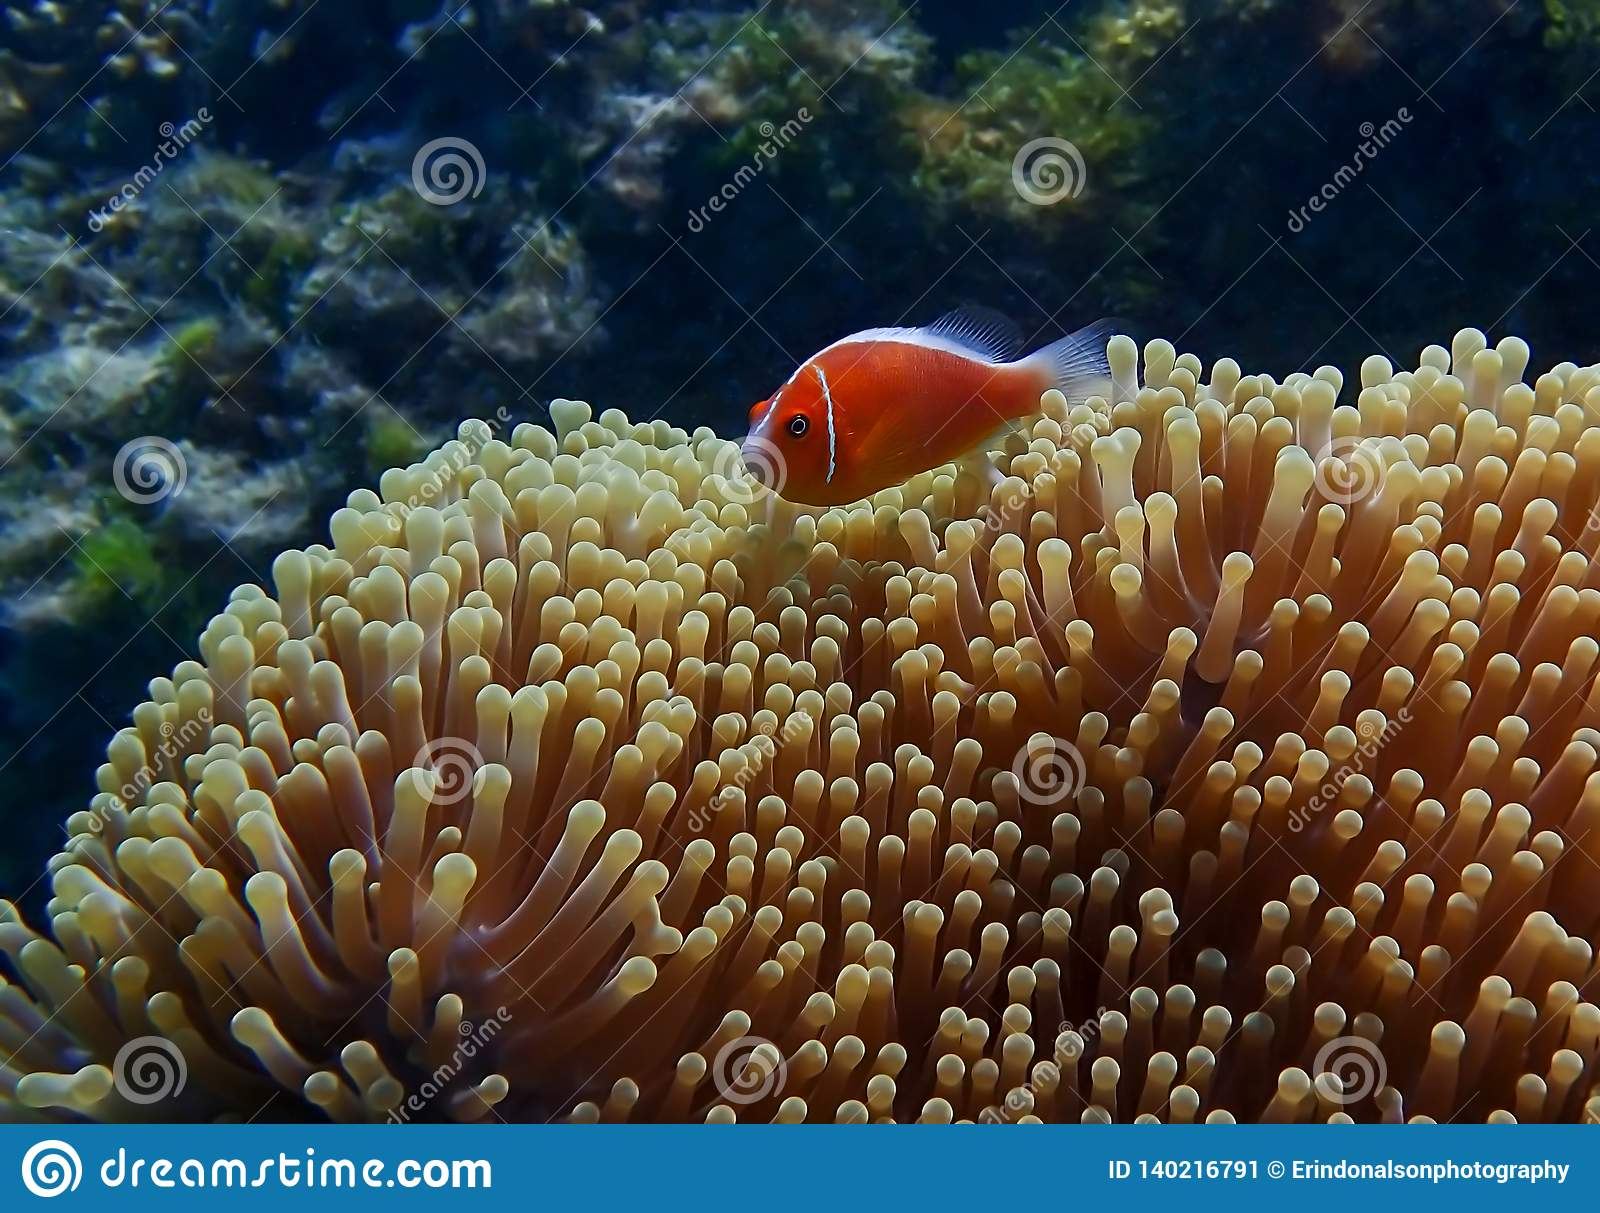 Bright orange tropical fish over large anemone with coral reef